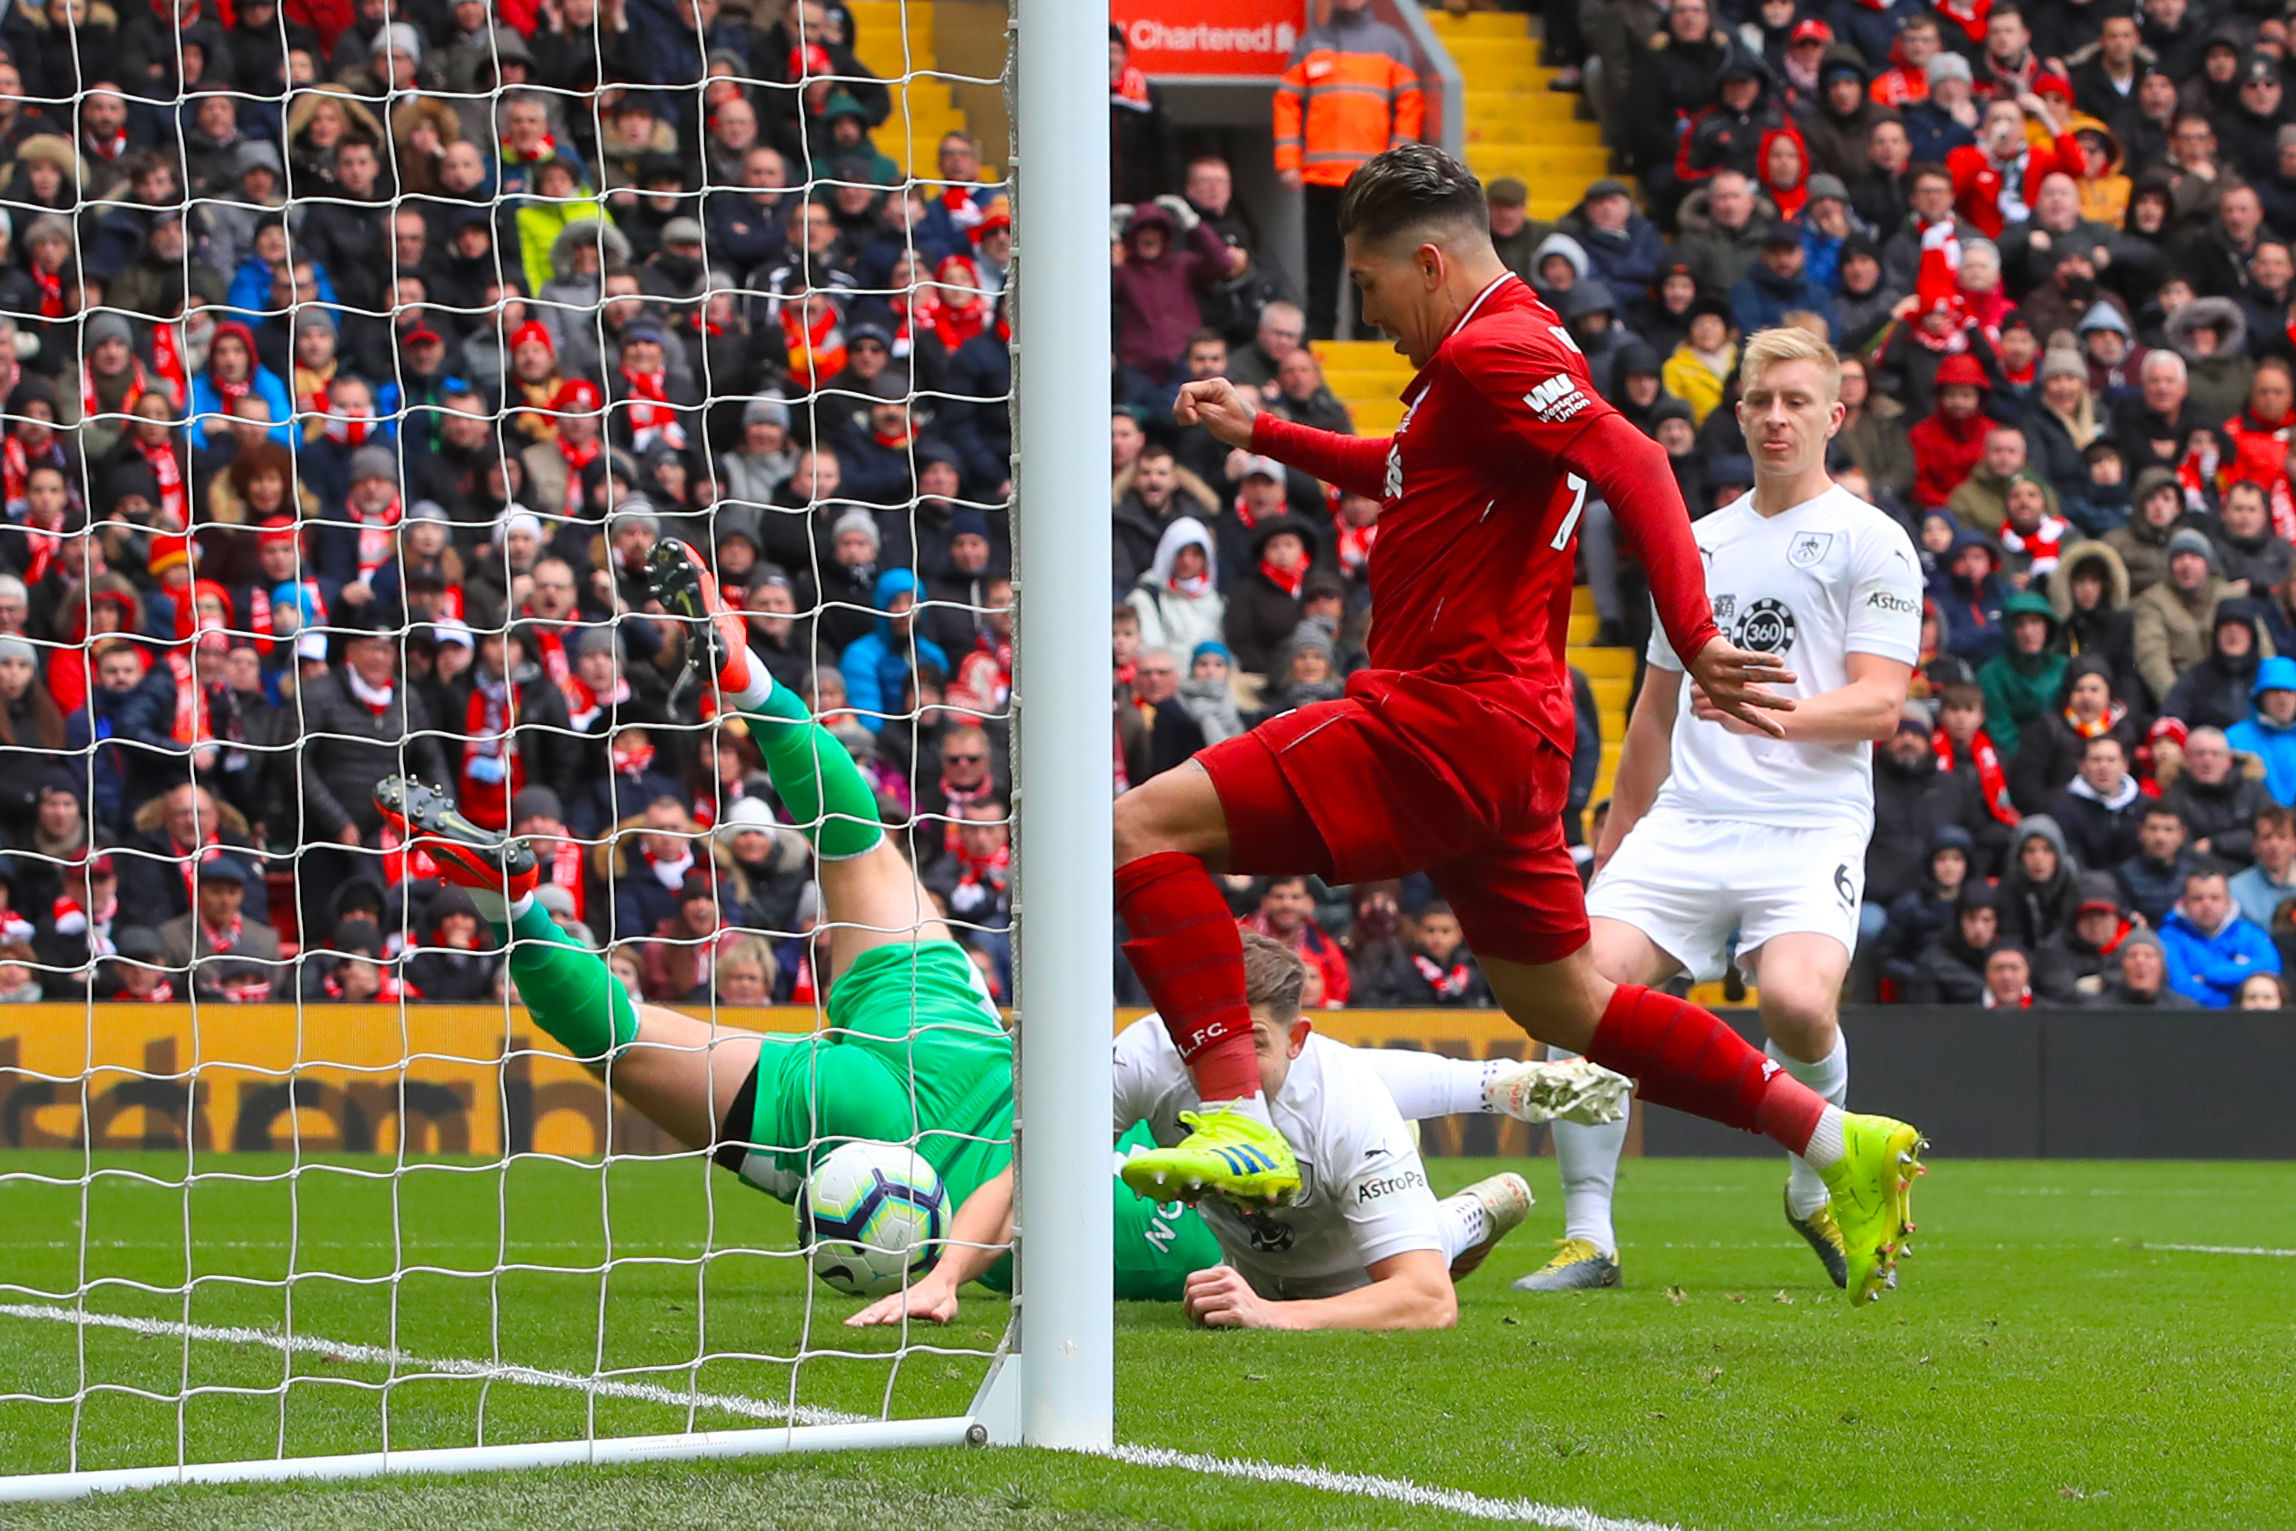 Liverpool 4 Burnley 2: All the talking points